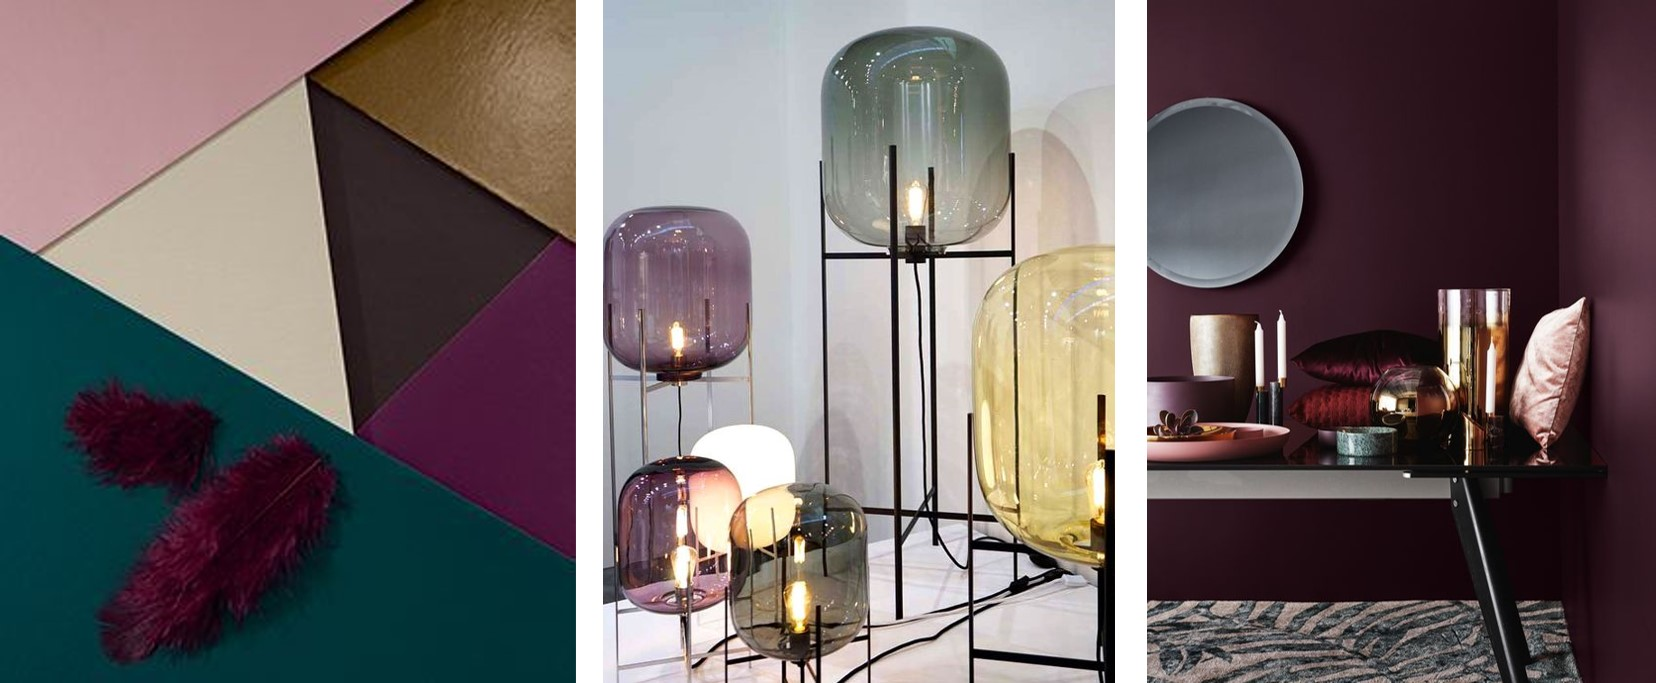 Interieur trends 2018 woontrends 2018 for Interieur beurs